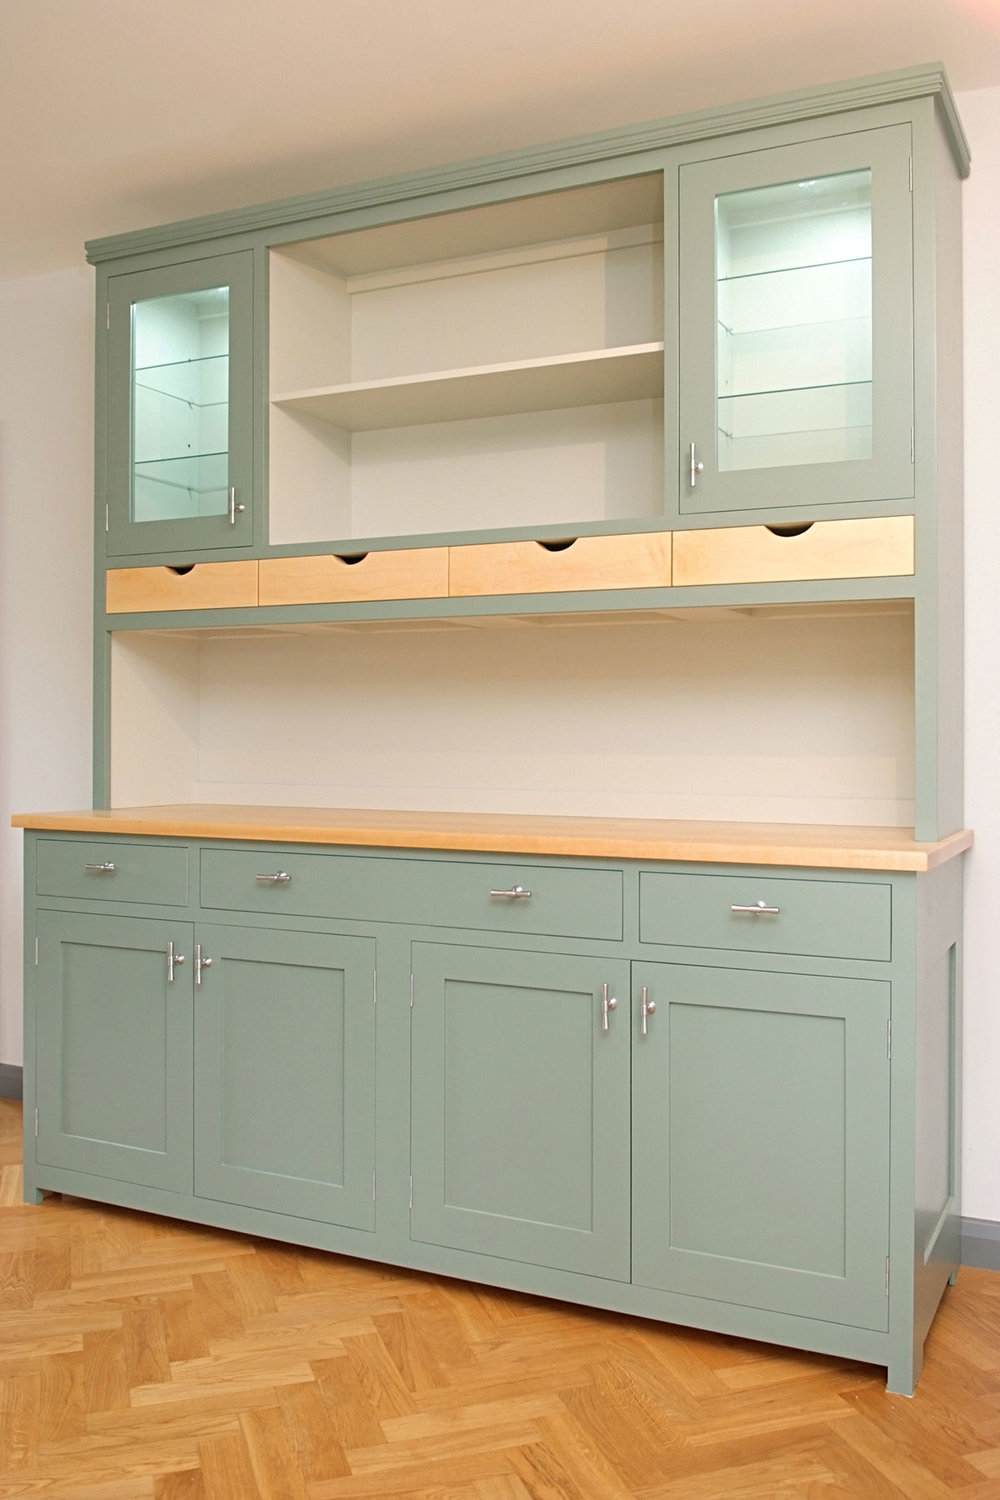 eddie-buckpitt-furniture-painted-and-glass-kitchen-dresser-26.jpg